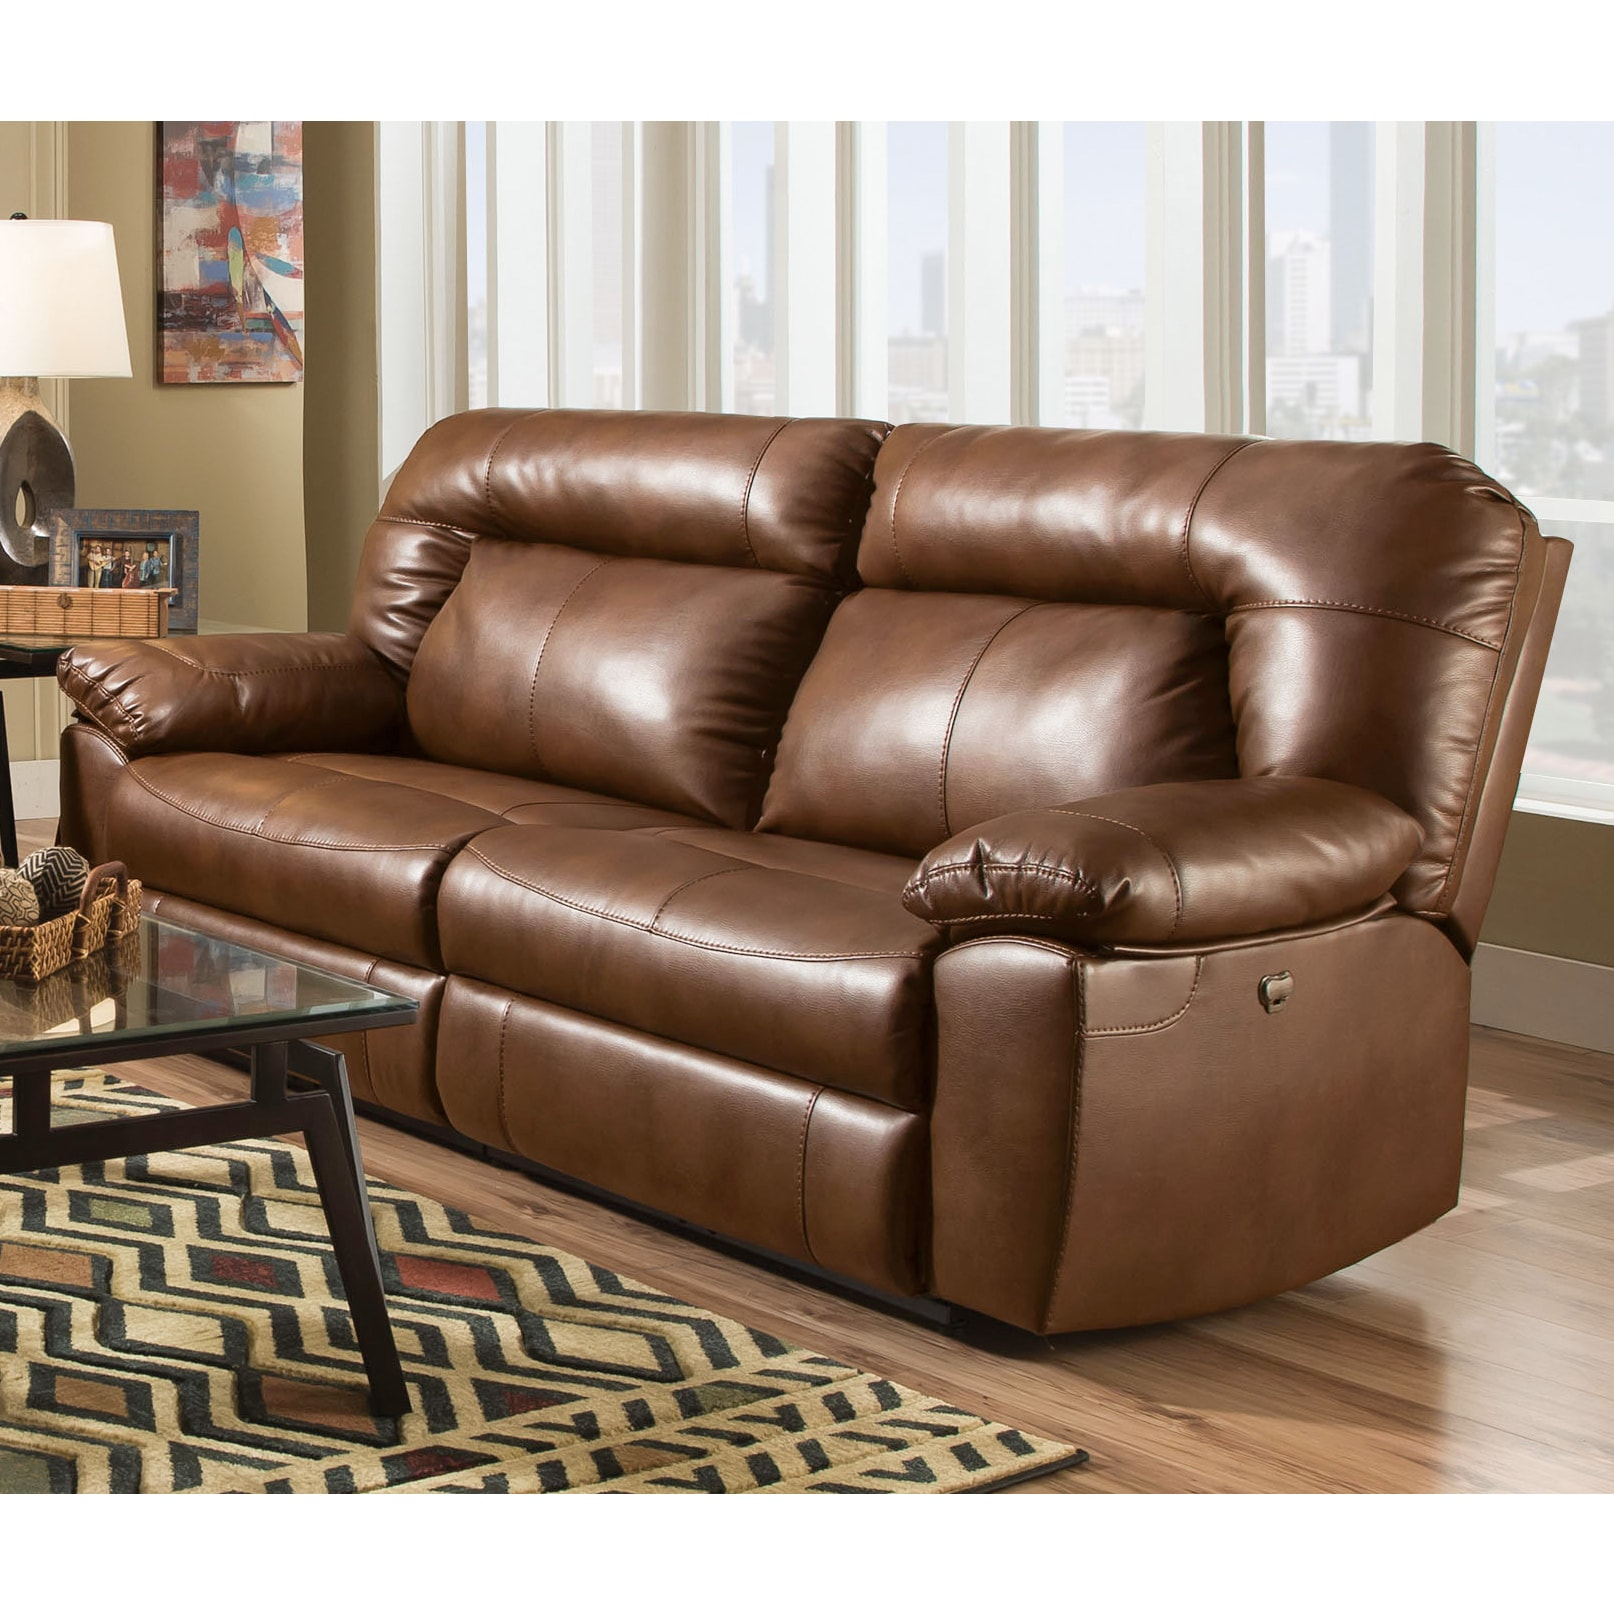 90 Inch Two Seat Dual Reclining Sofa